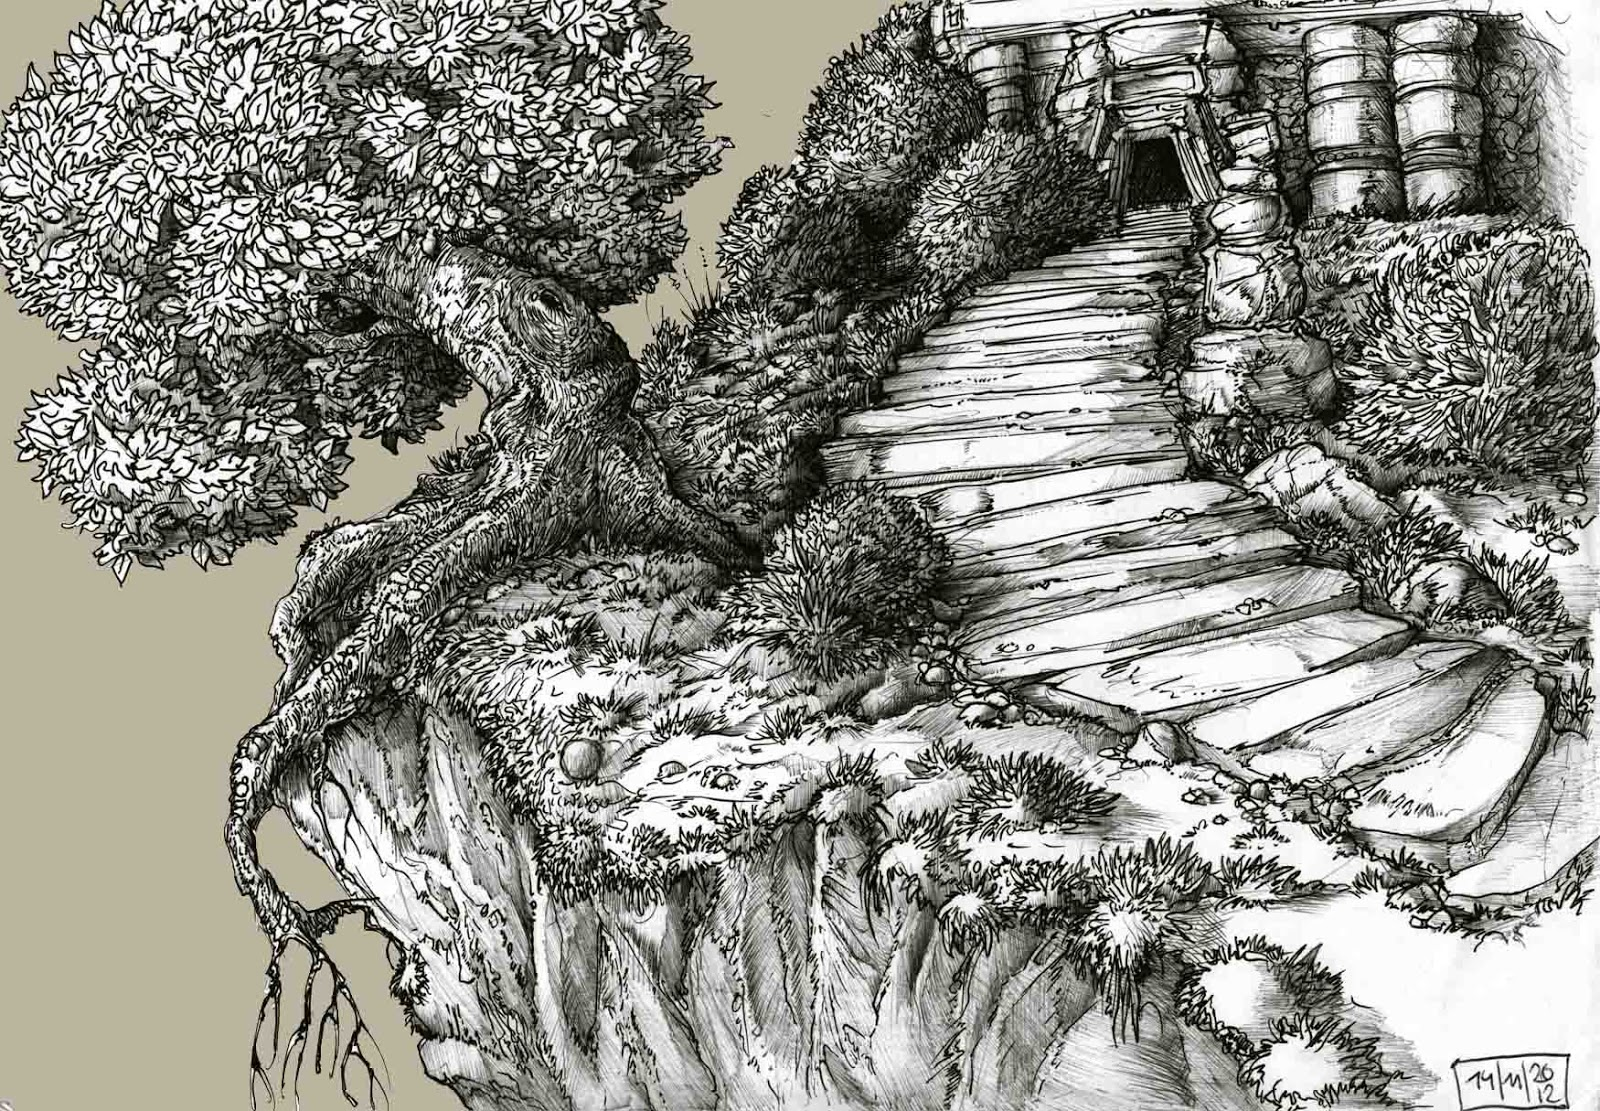 Drawing Pencil | How To Draw a Landscape with Trees and a ... |Tree Landscape Drawing